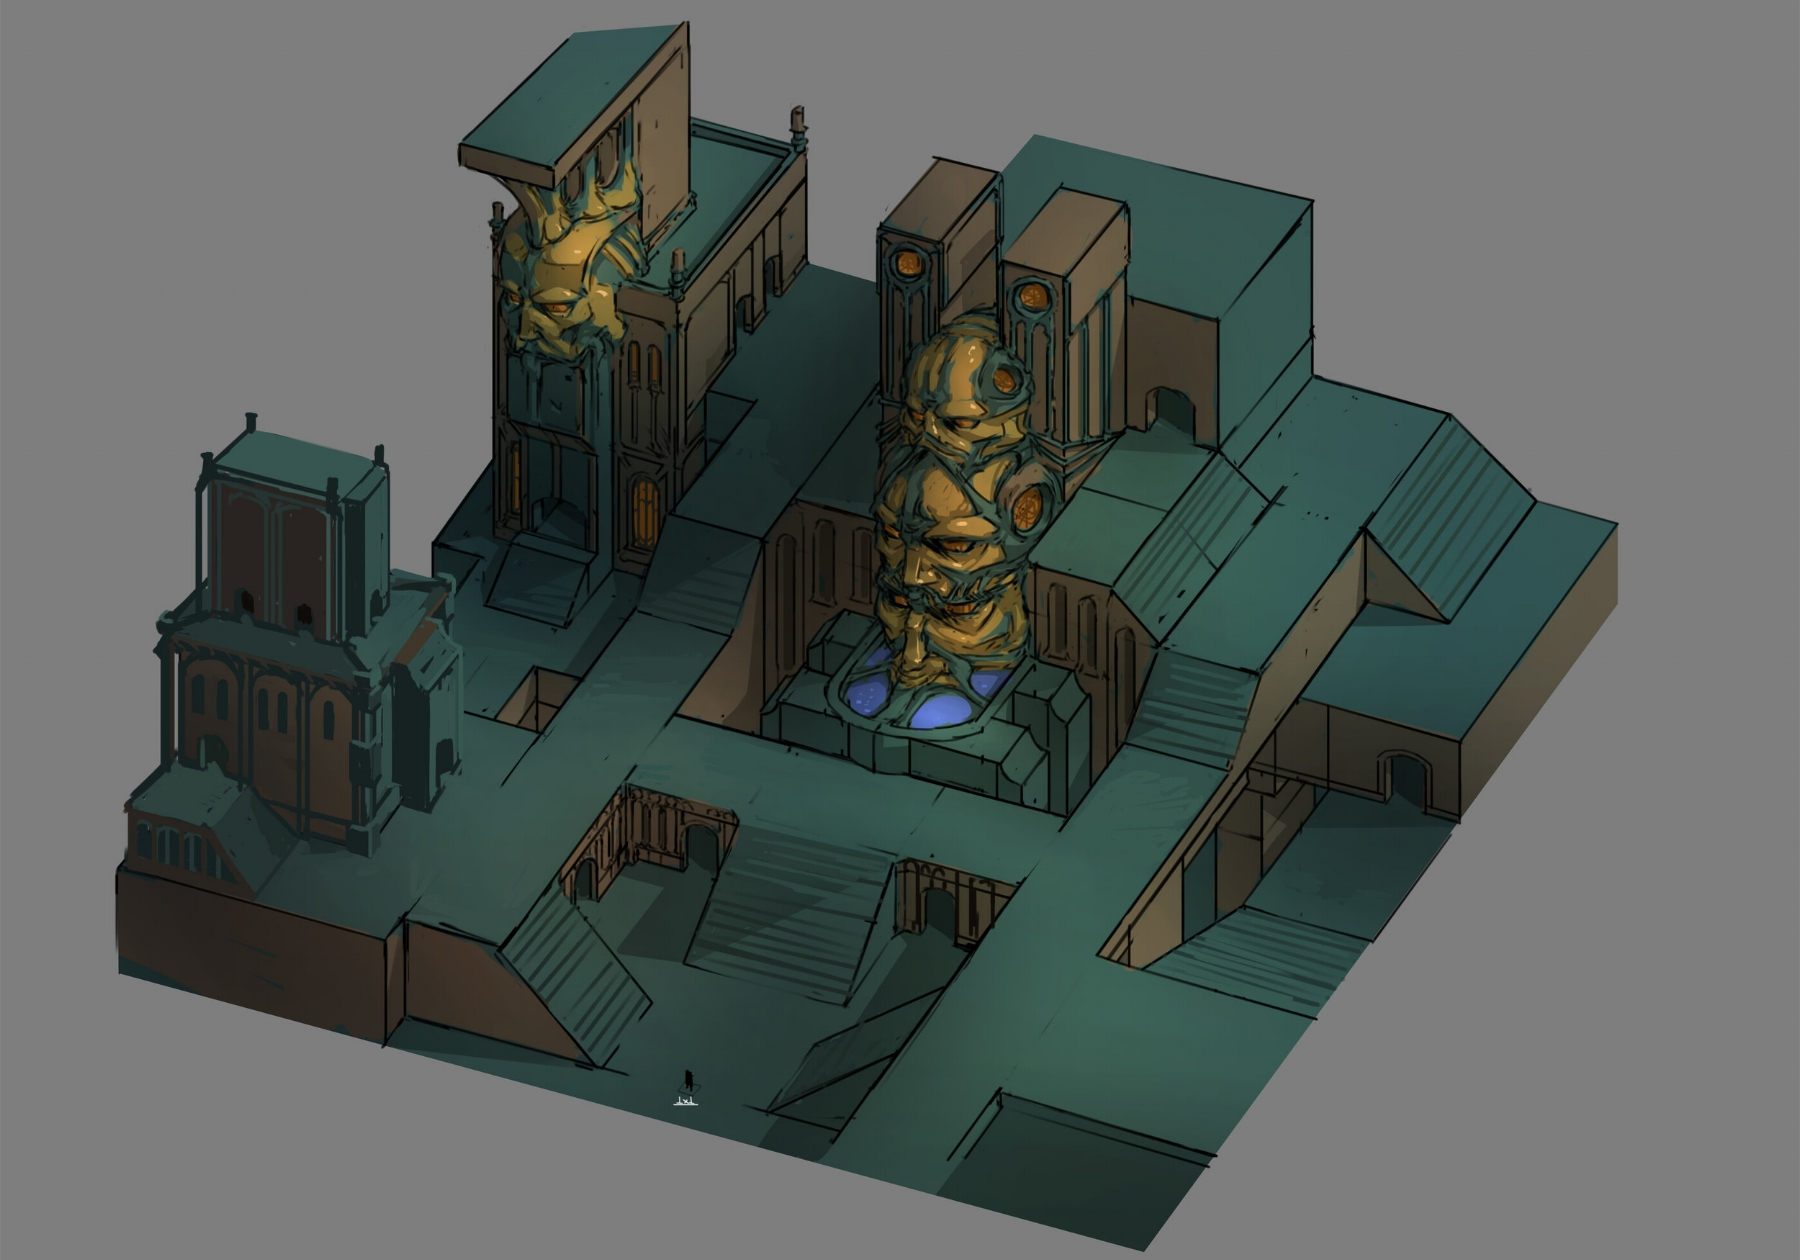 An early temple district concept